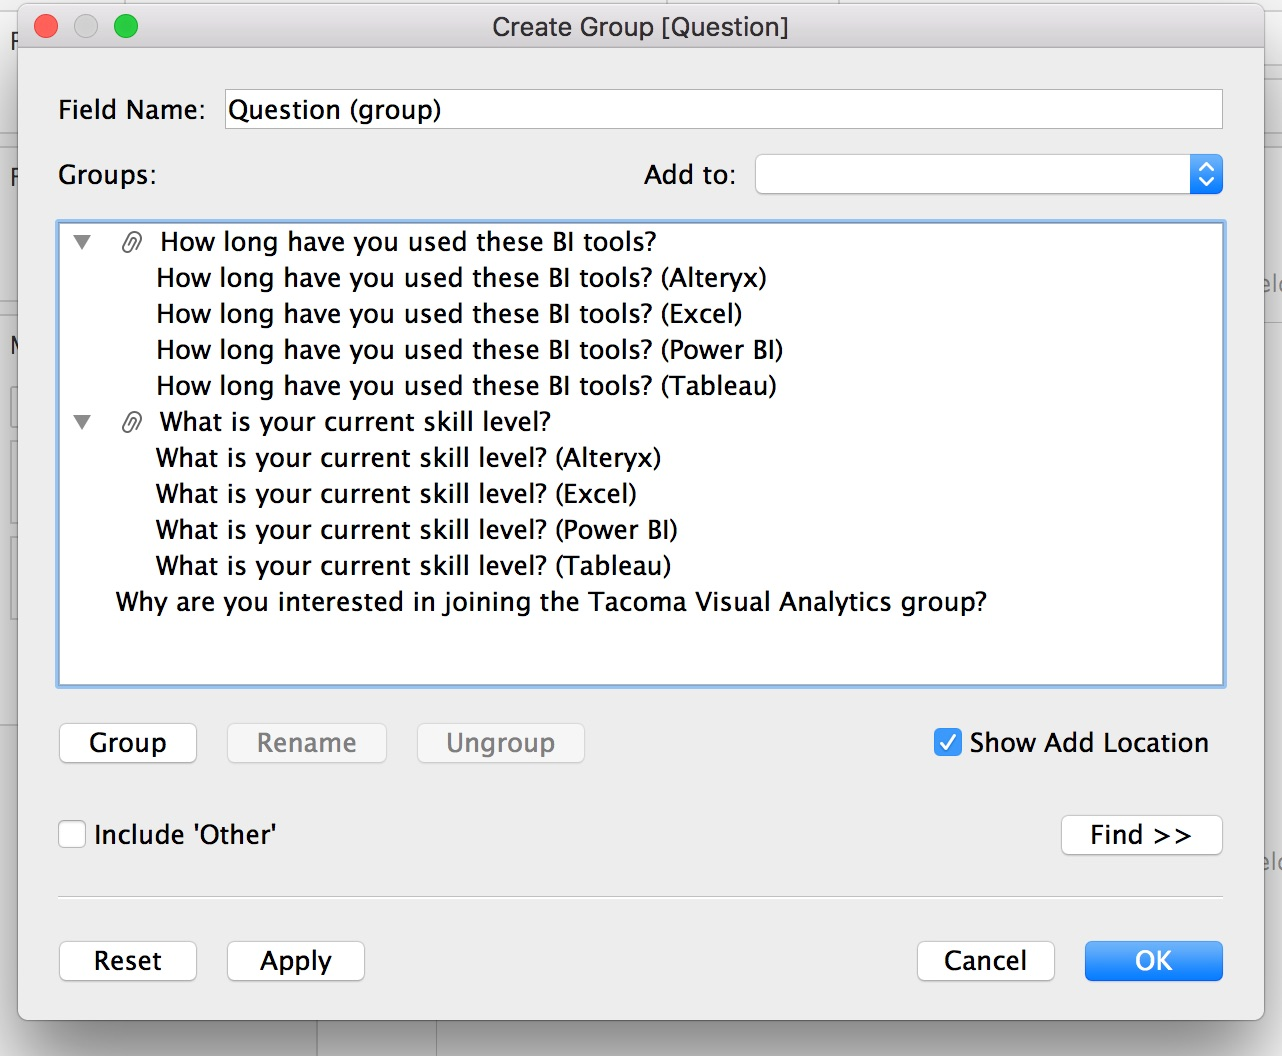 to address this we can use the create group feature in tableau to group the values into distinct questions